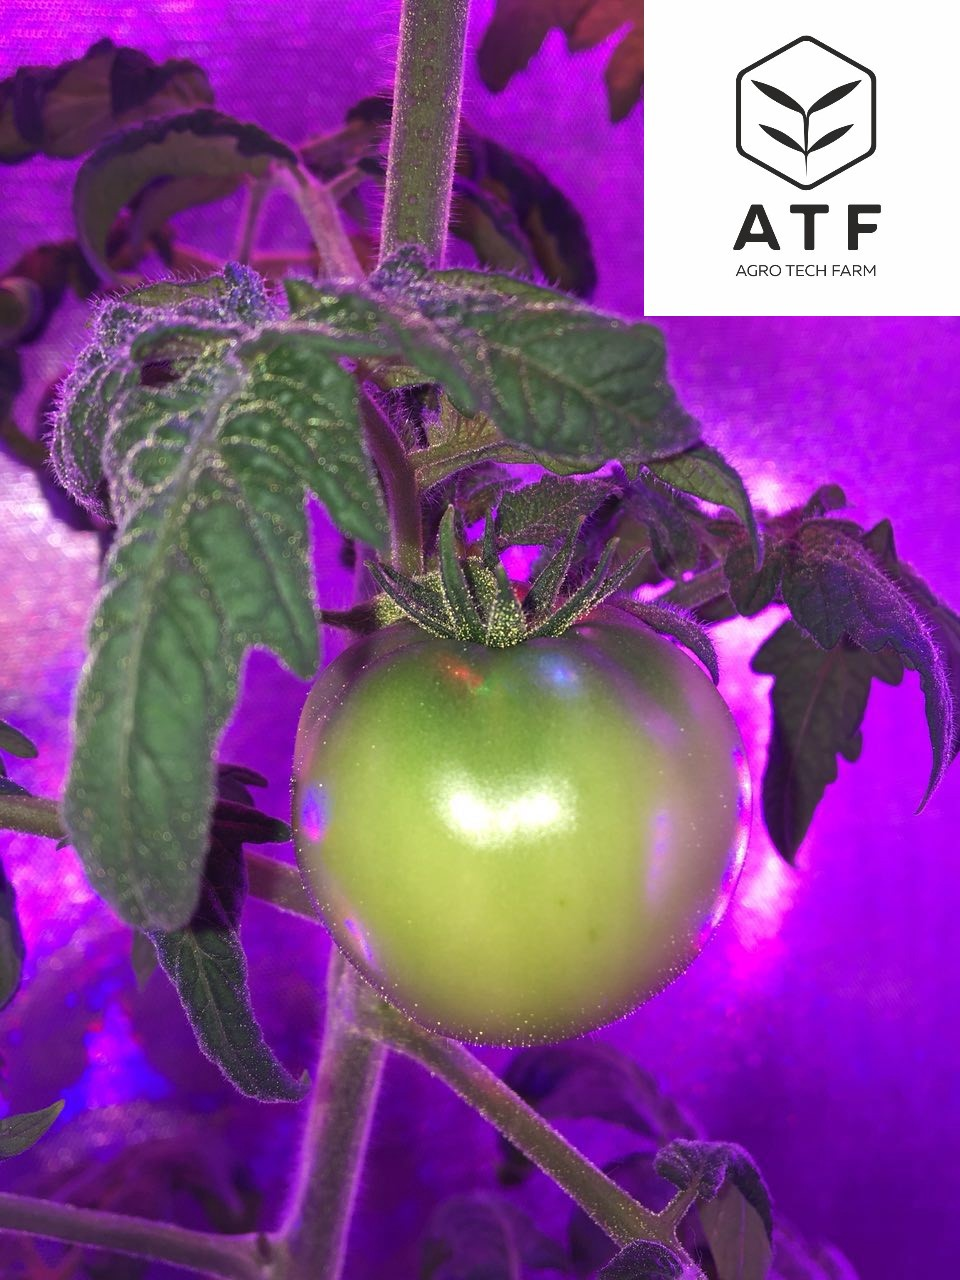 medium.com - Agro Tech Farm - Market of organic products The deficit of environmentally friendly and safe products is a global…